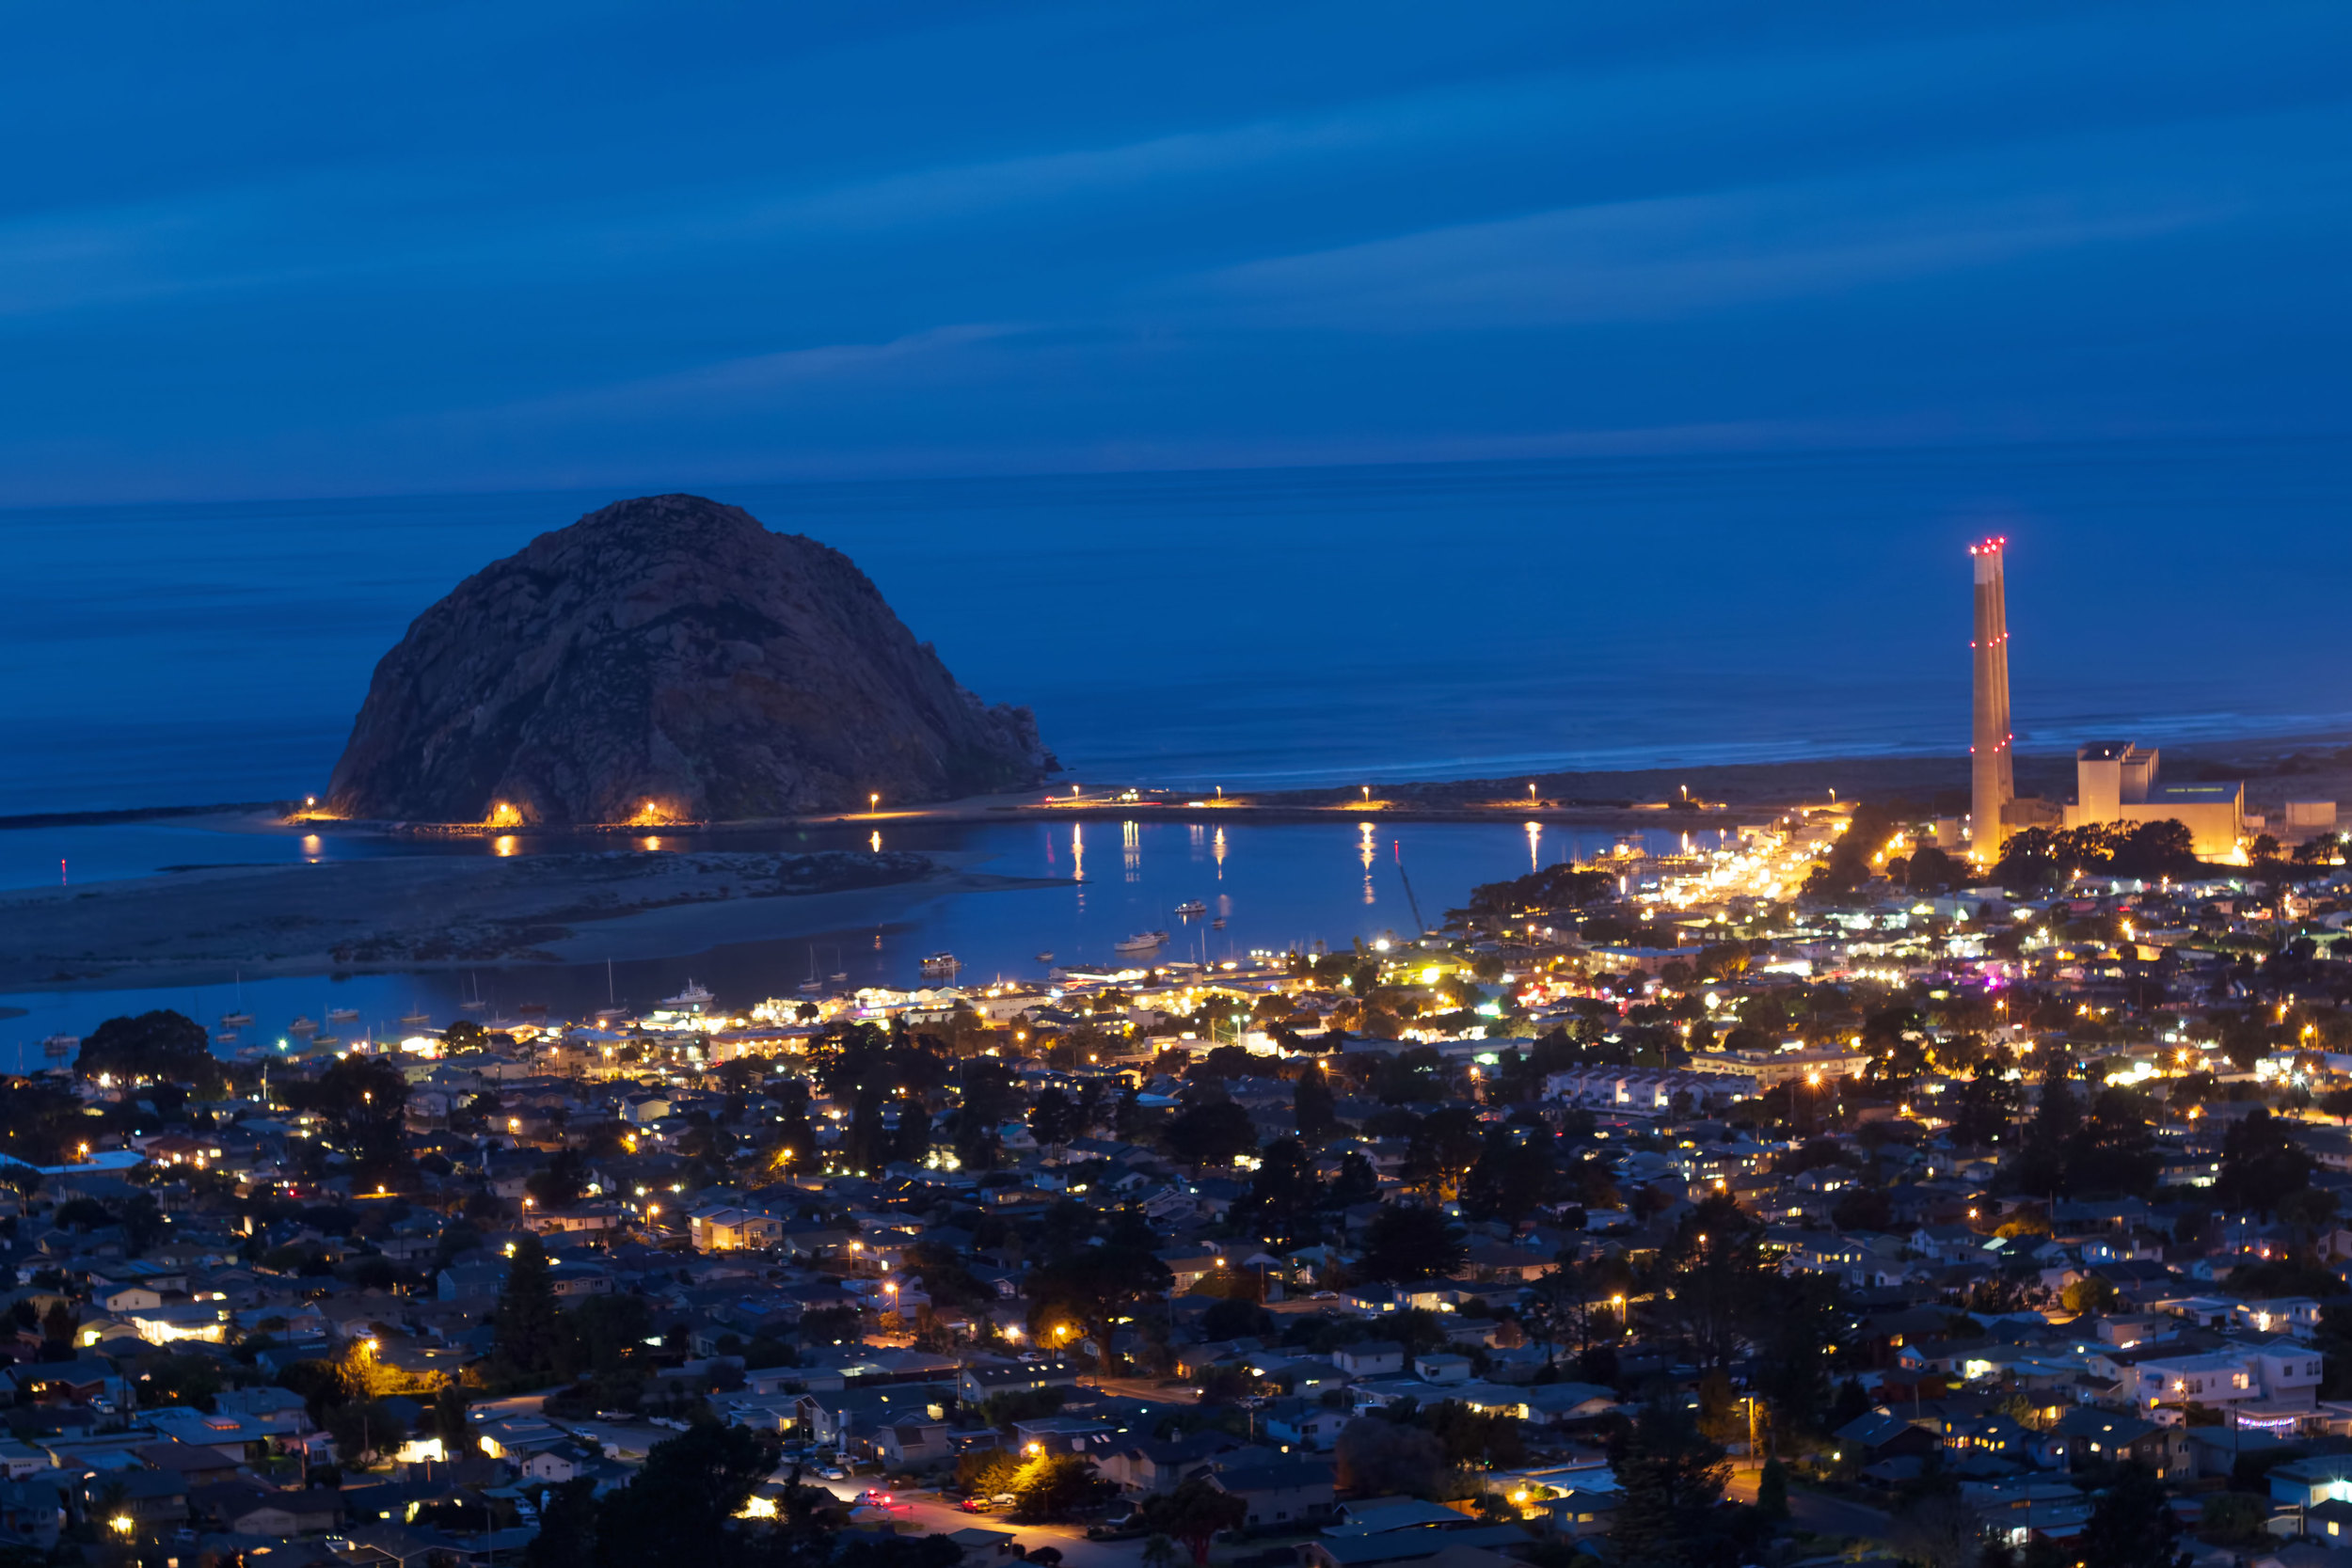 Nightscape of Morro Bay, CA by Chad Lloyd